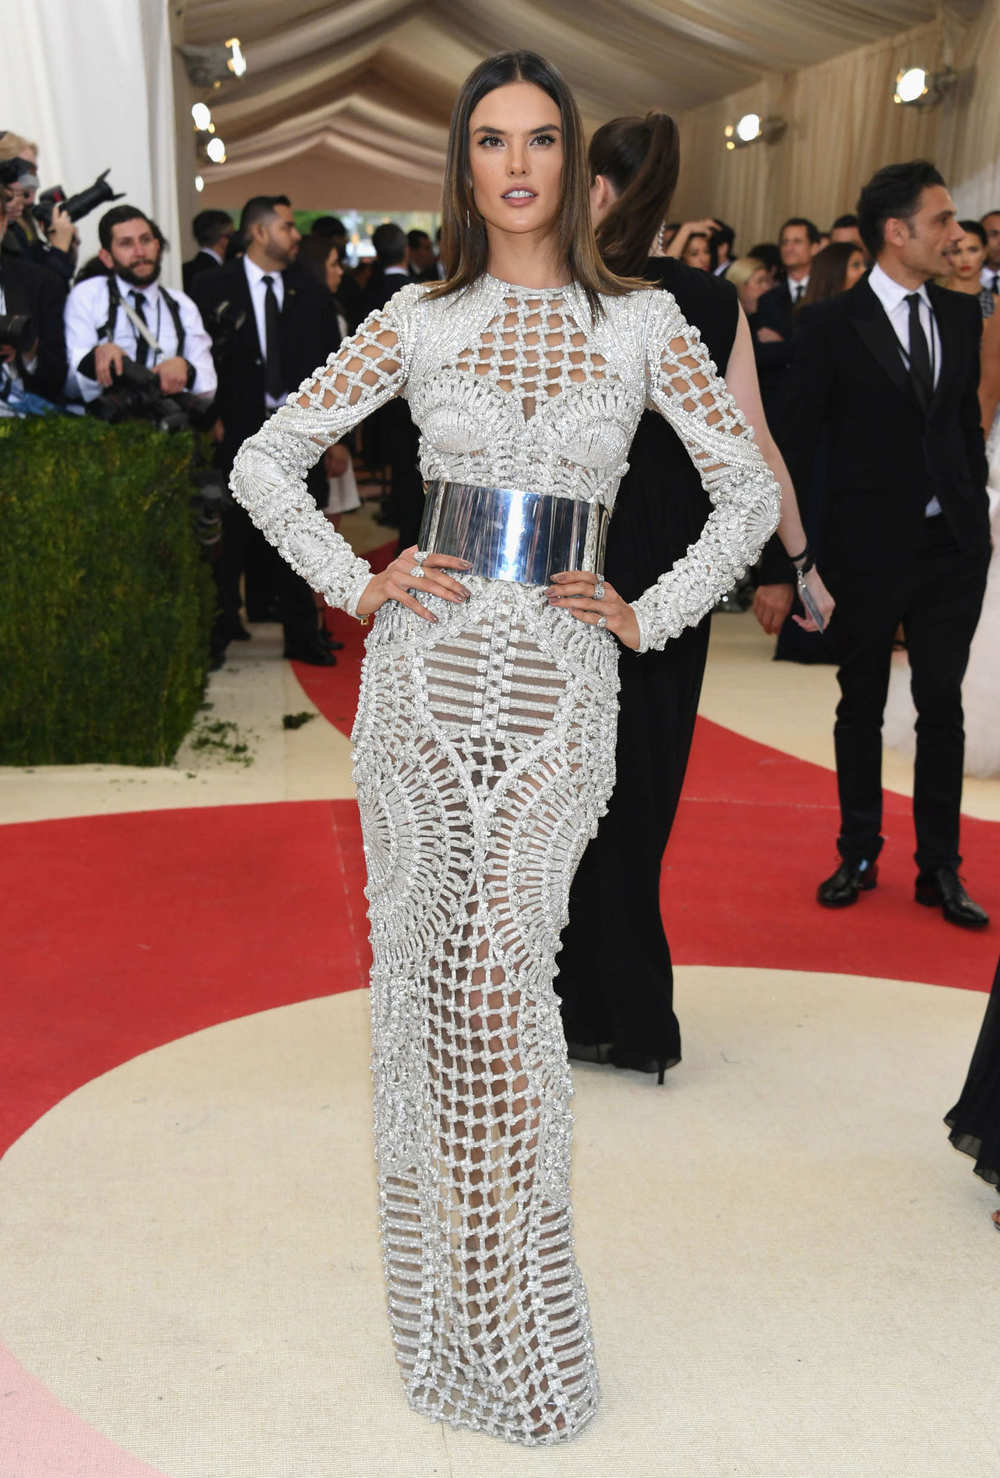 Alessandra Ambrosio in Balmain at the Met Gala 2016.